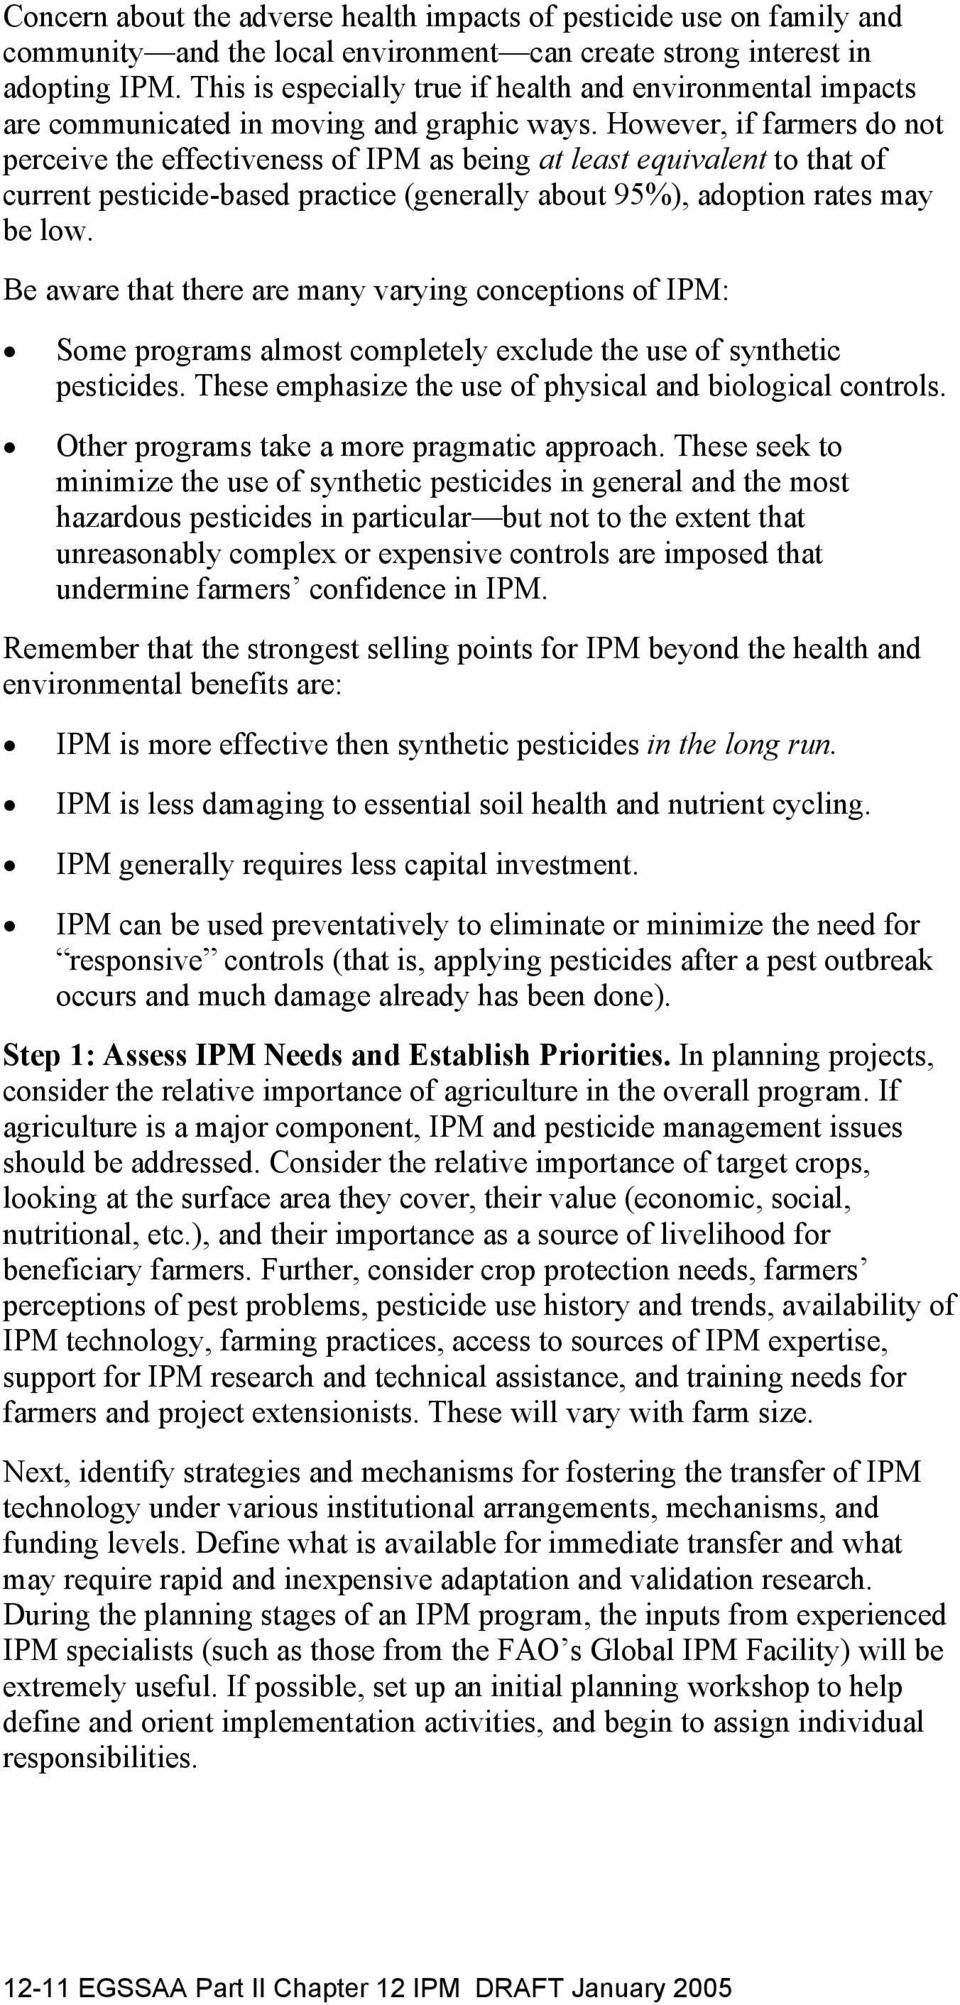 However, if farmers do not perceive the effectiveness of IPM as being at least equivalent to that of current pesticide-based practice (generally about 95%), adoption rates may be low.